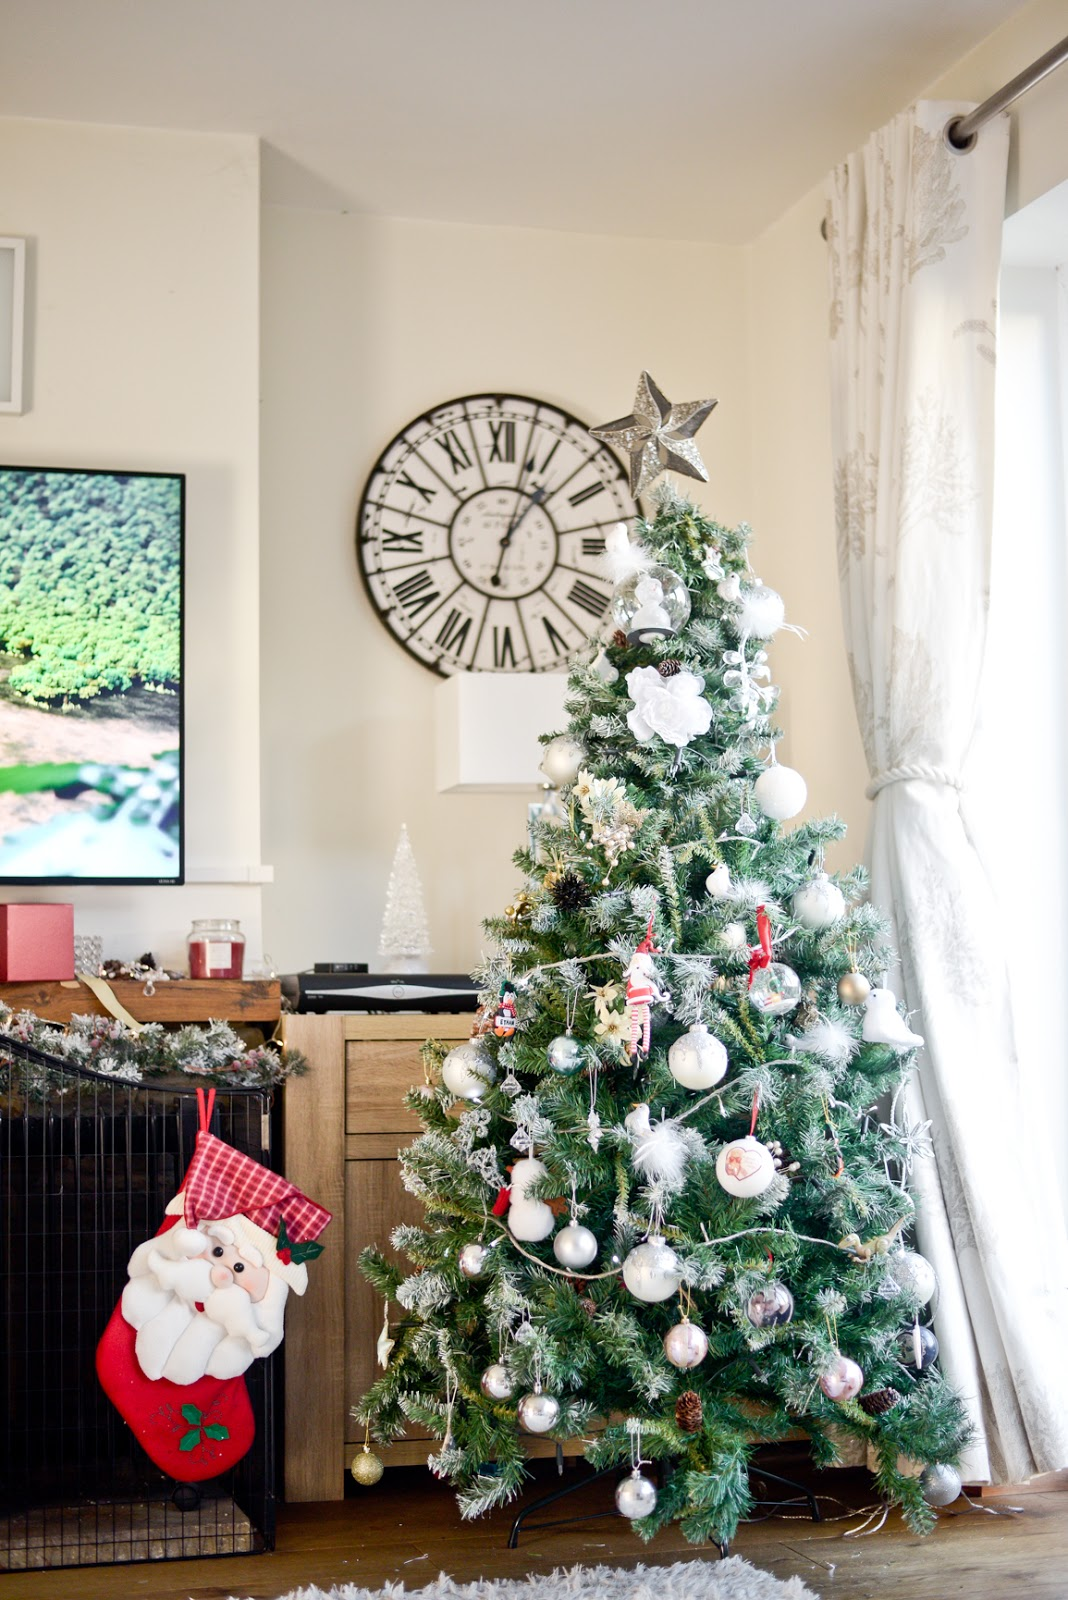 Christmas Decor Next : Our christmas home decor plans for the house next year